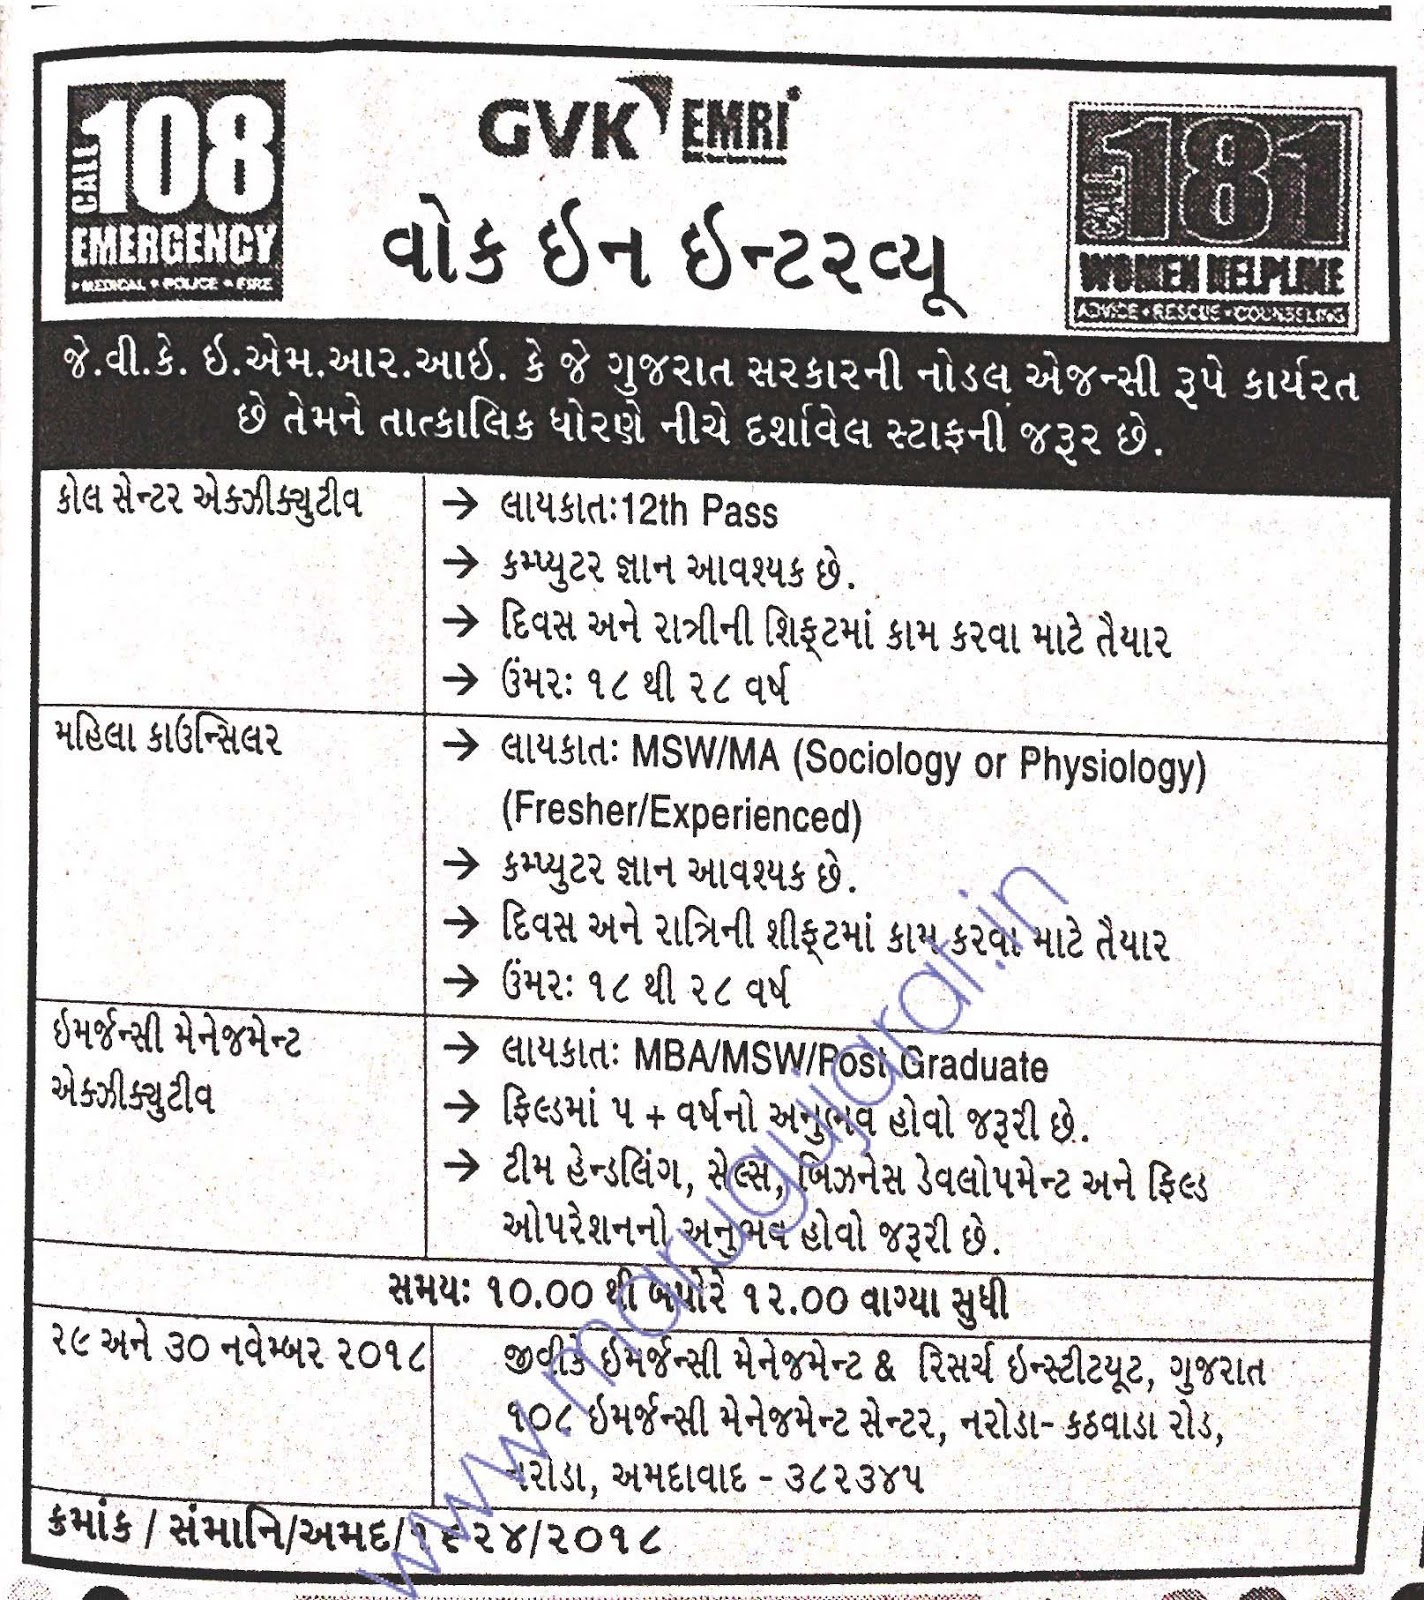 GVK EMRI Recruitment for Various Posts 2018 ~ Updates